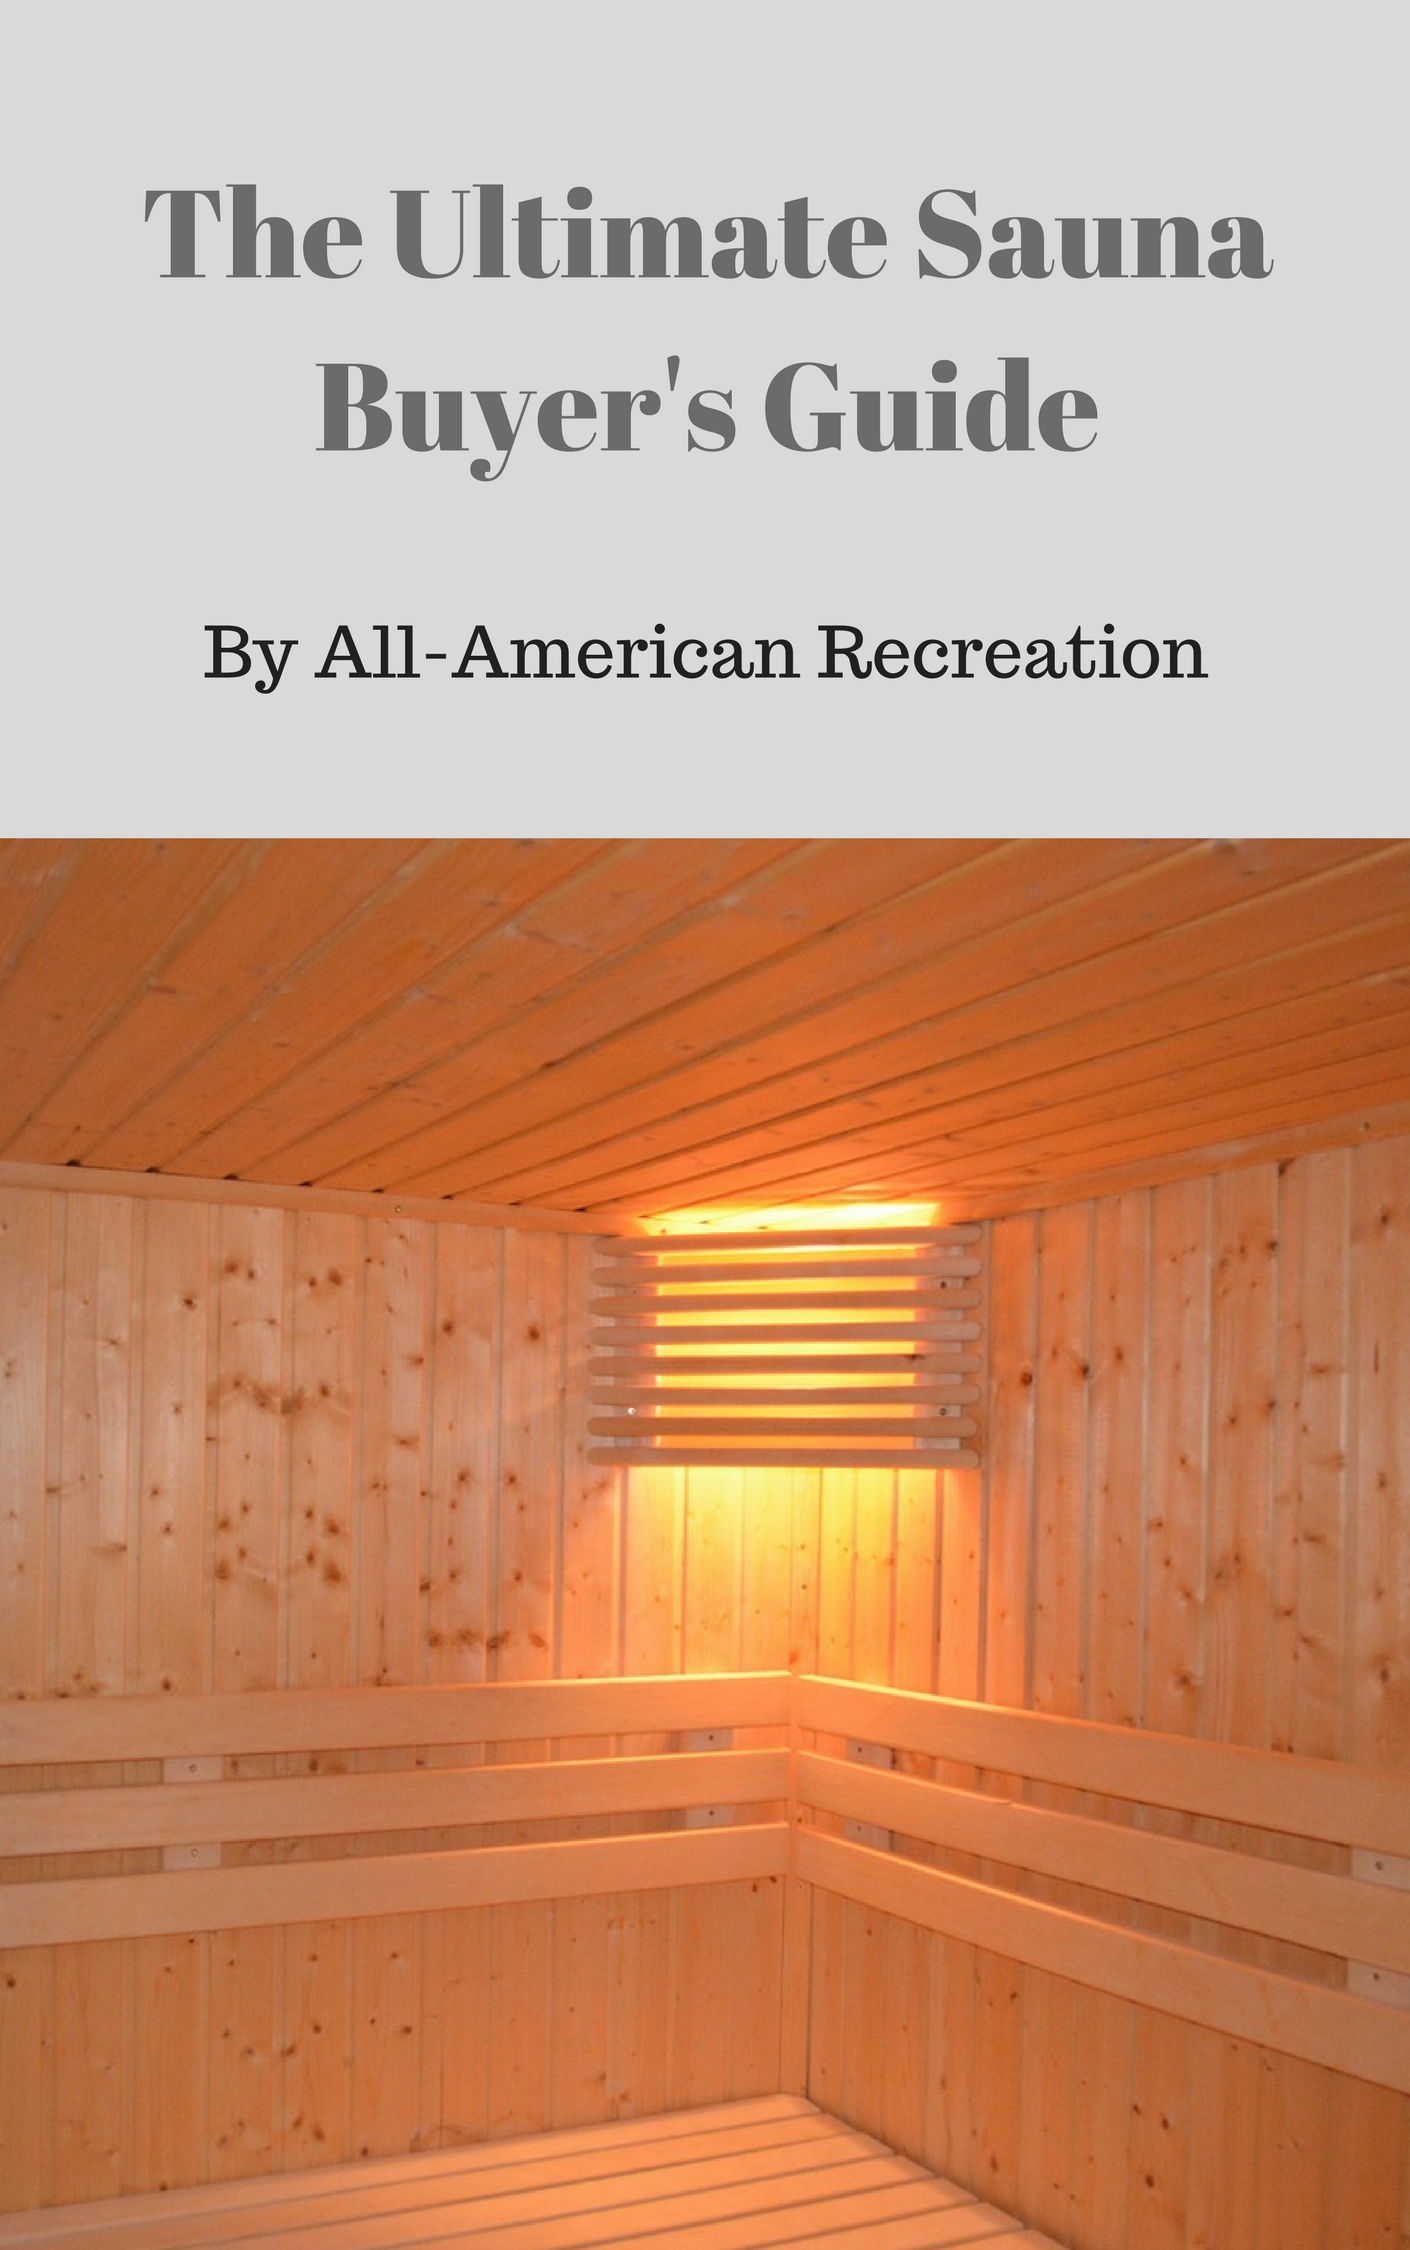 The Ultimate Sauna Buyer's Guide